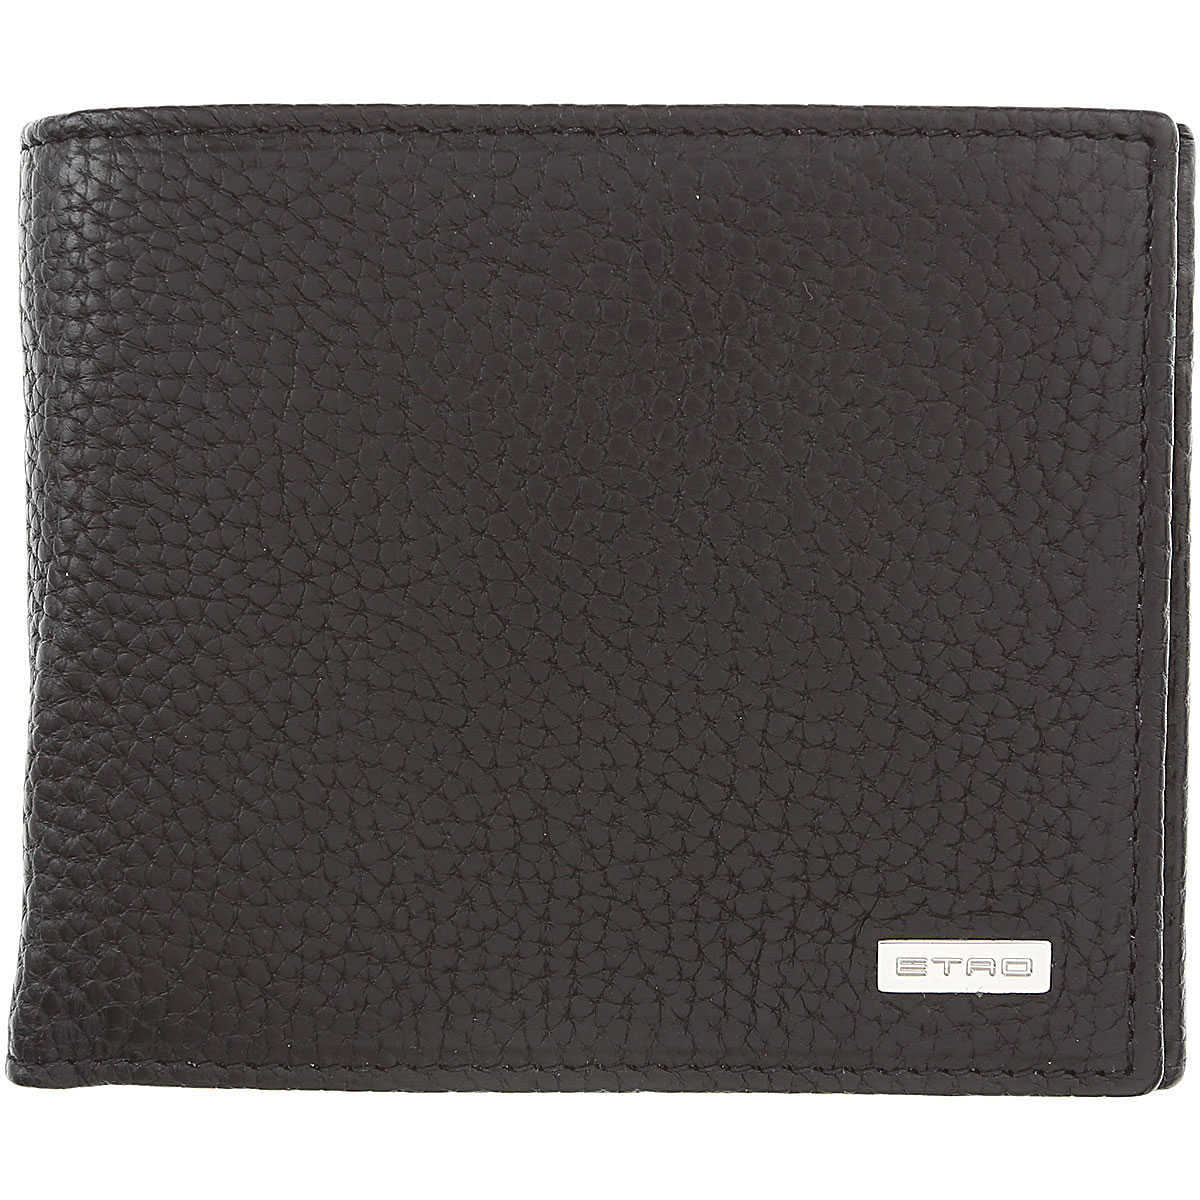 Etro Wallet for Men On Sale Ebony DK - GOOFASH - Mens WALLETS